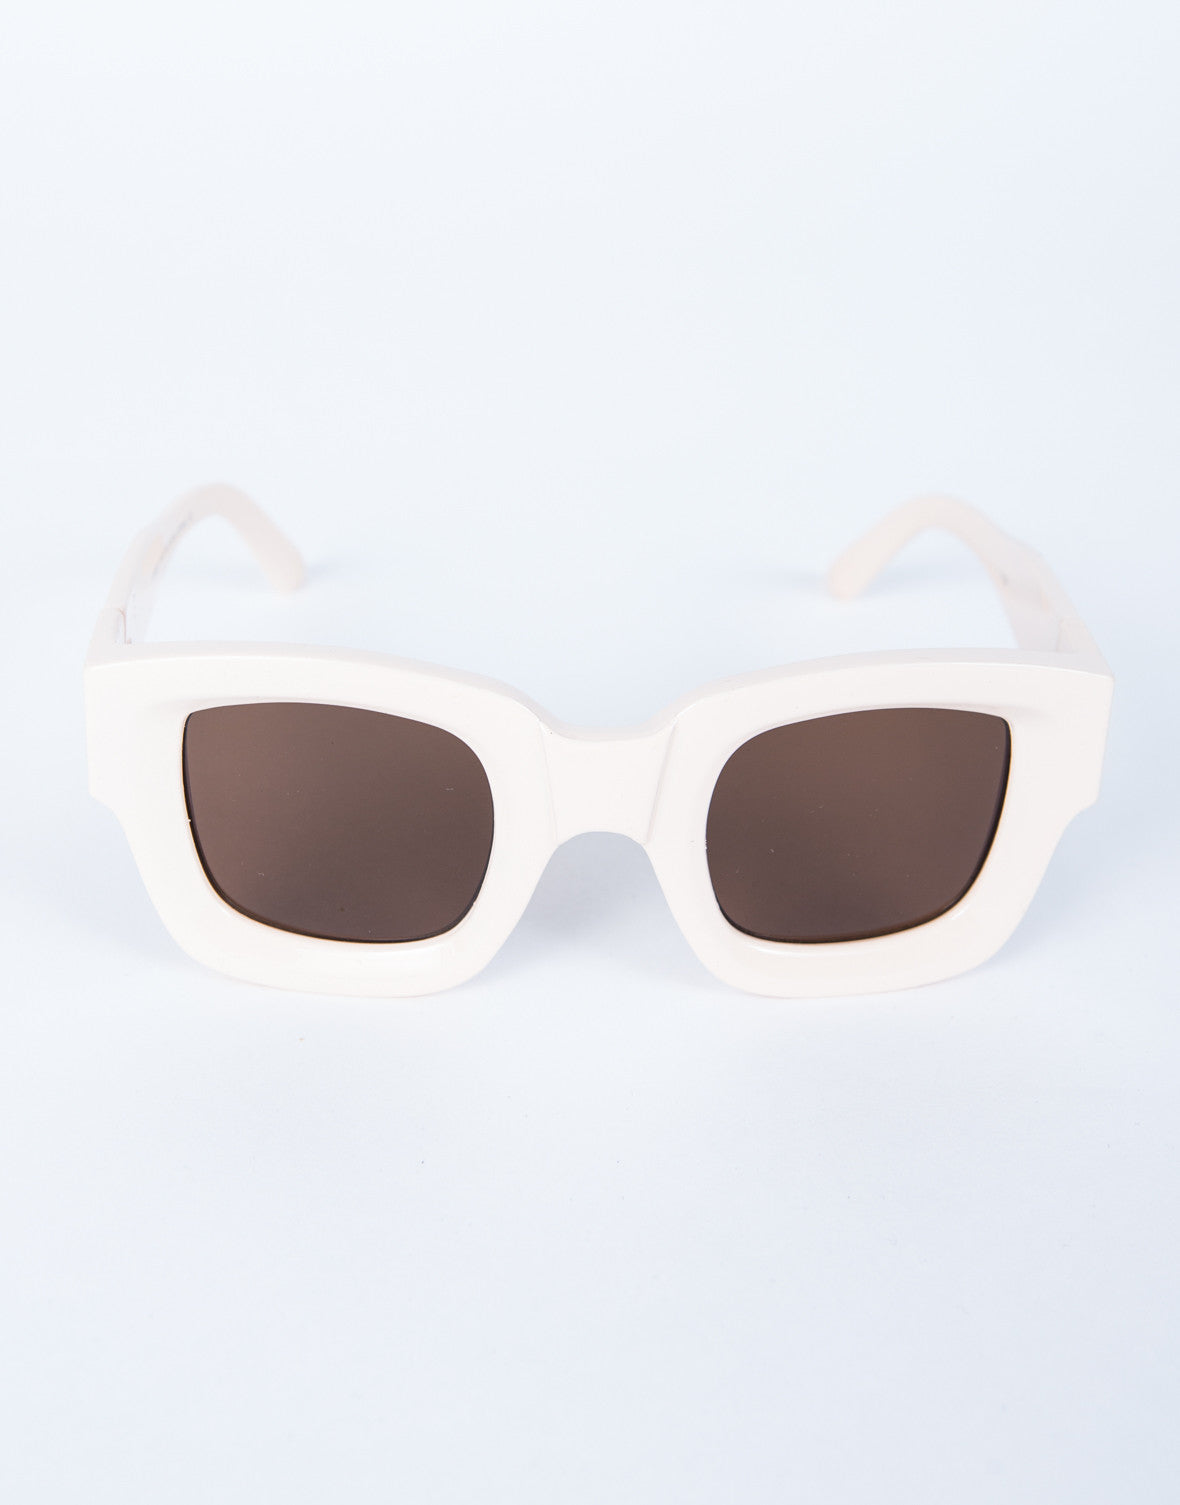 Retro Squared Sunnies